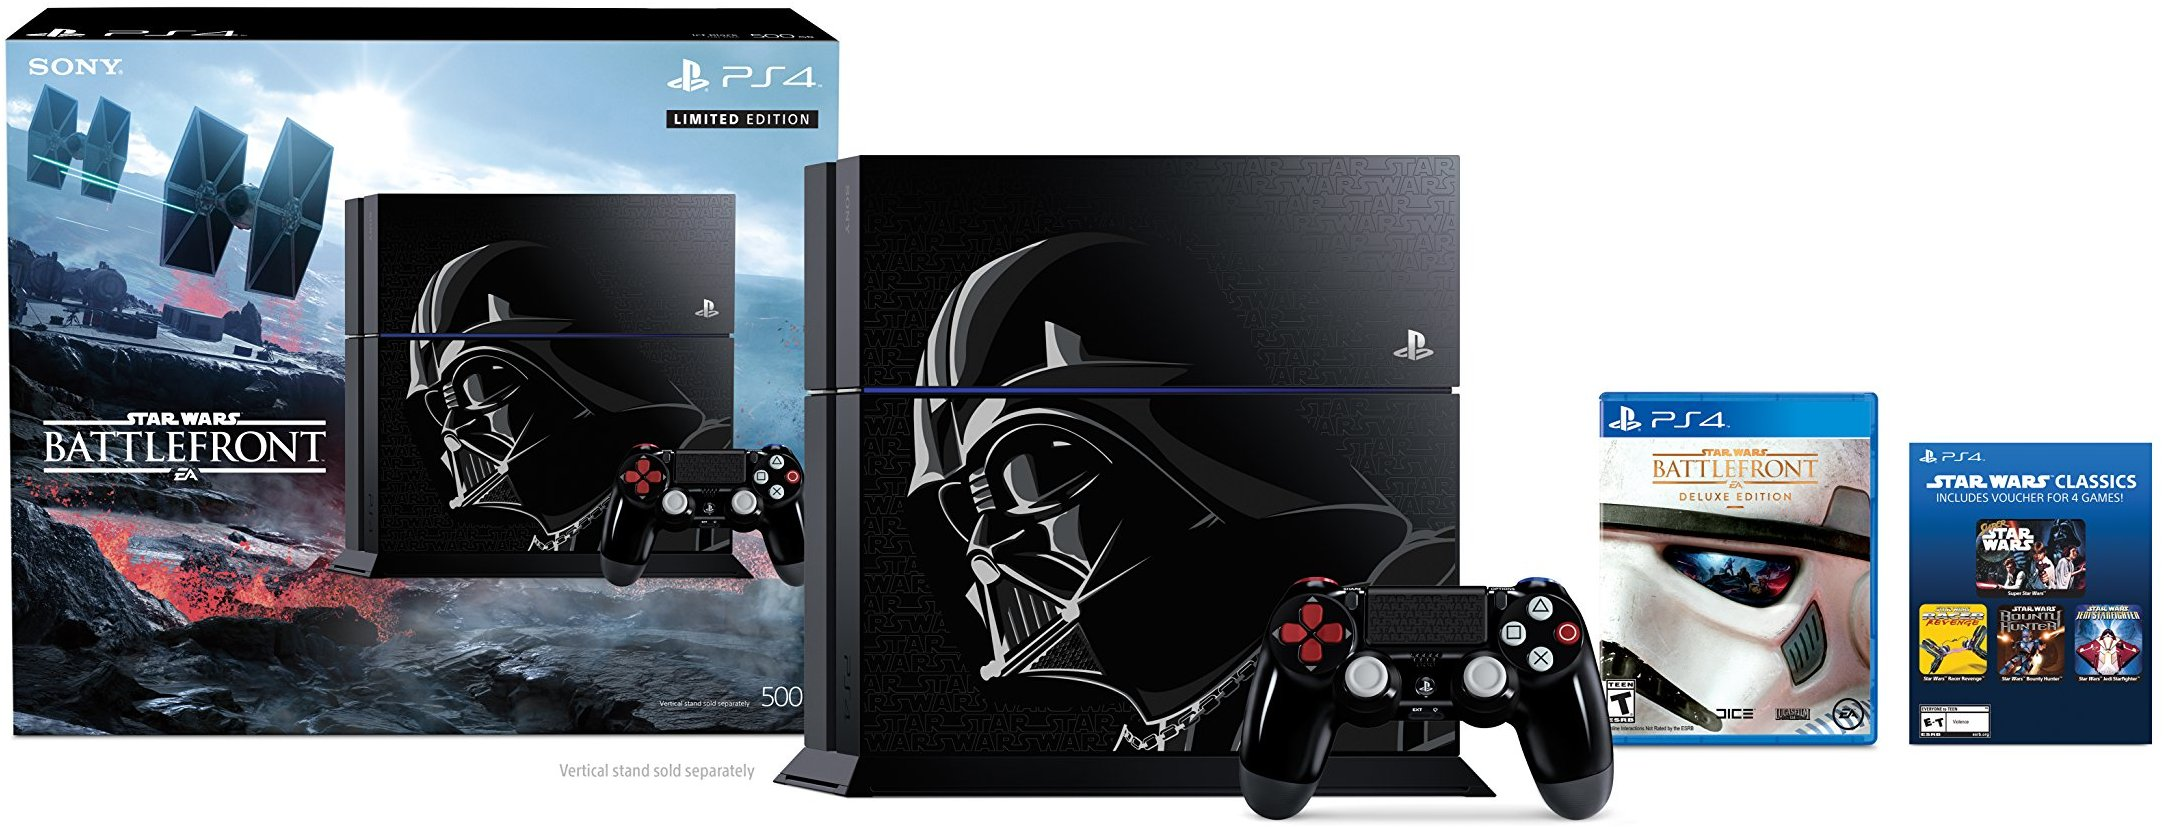 Ps4 How To Get Your Hands On A With 405 Firmware Or Lower Sony Playstation 4 Slim 500gb Cuh 2006a